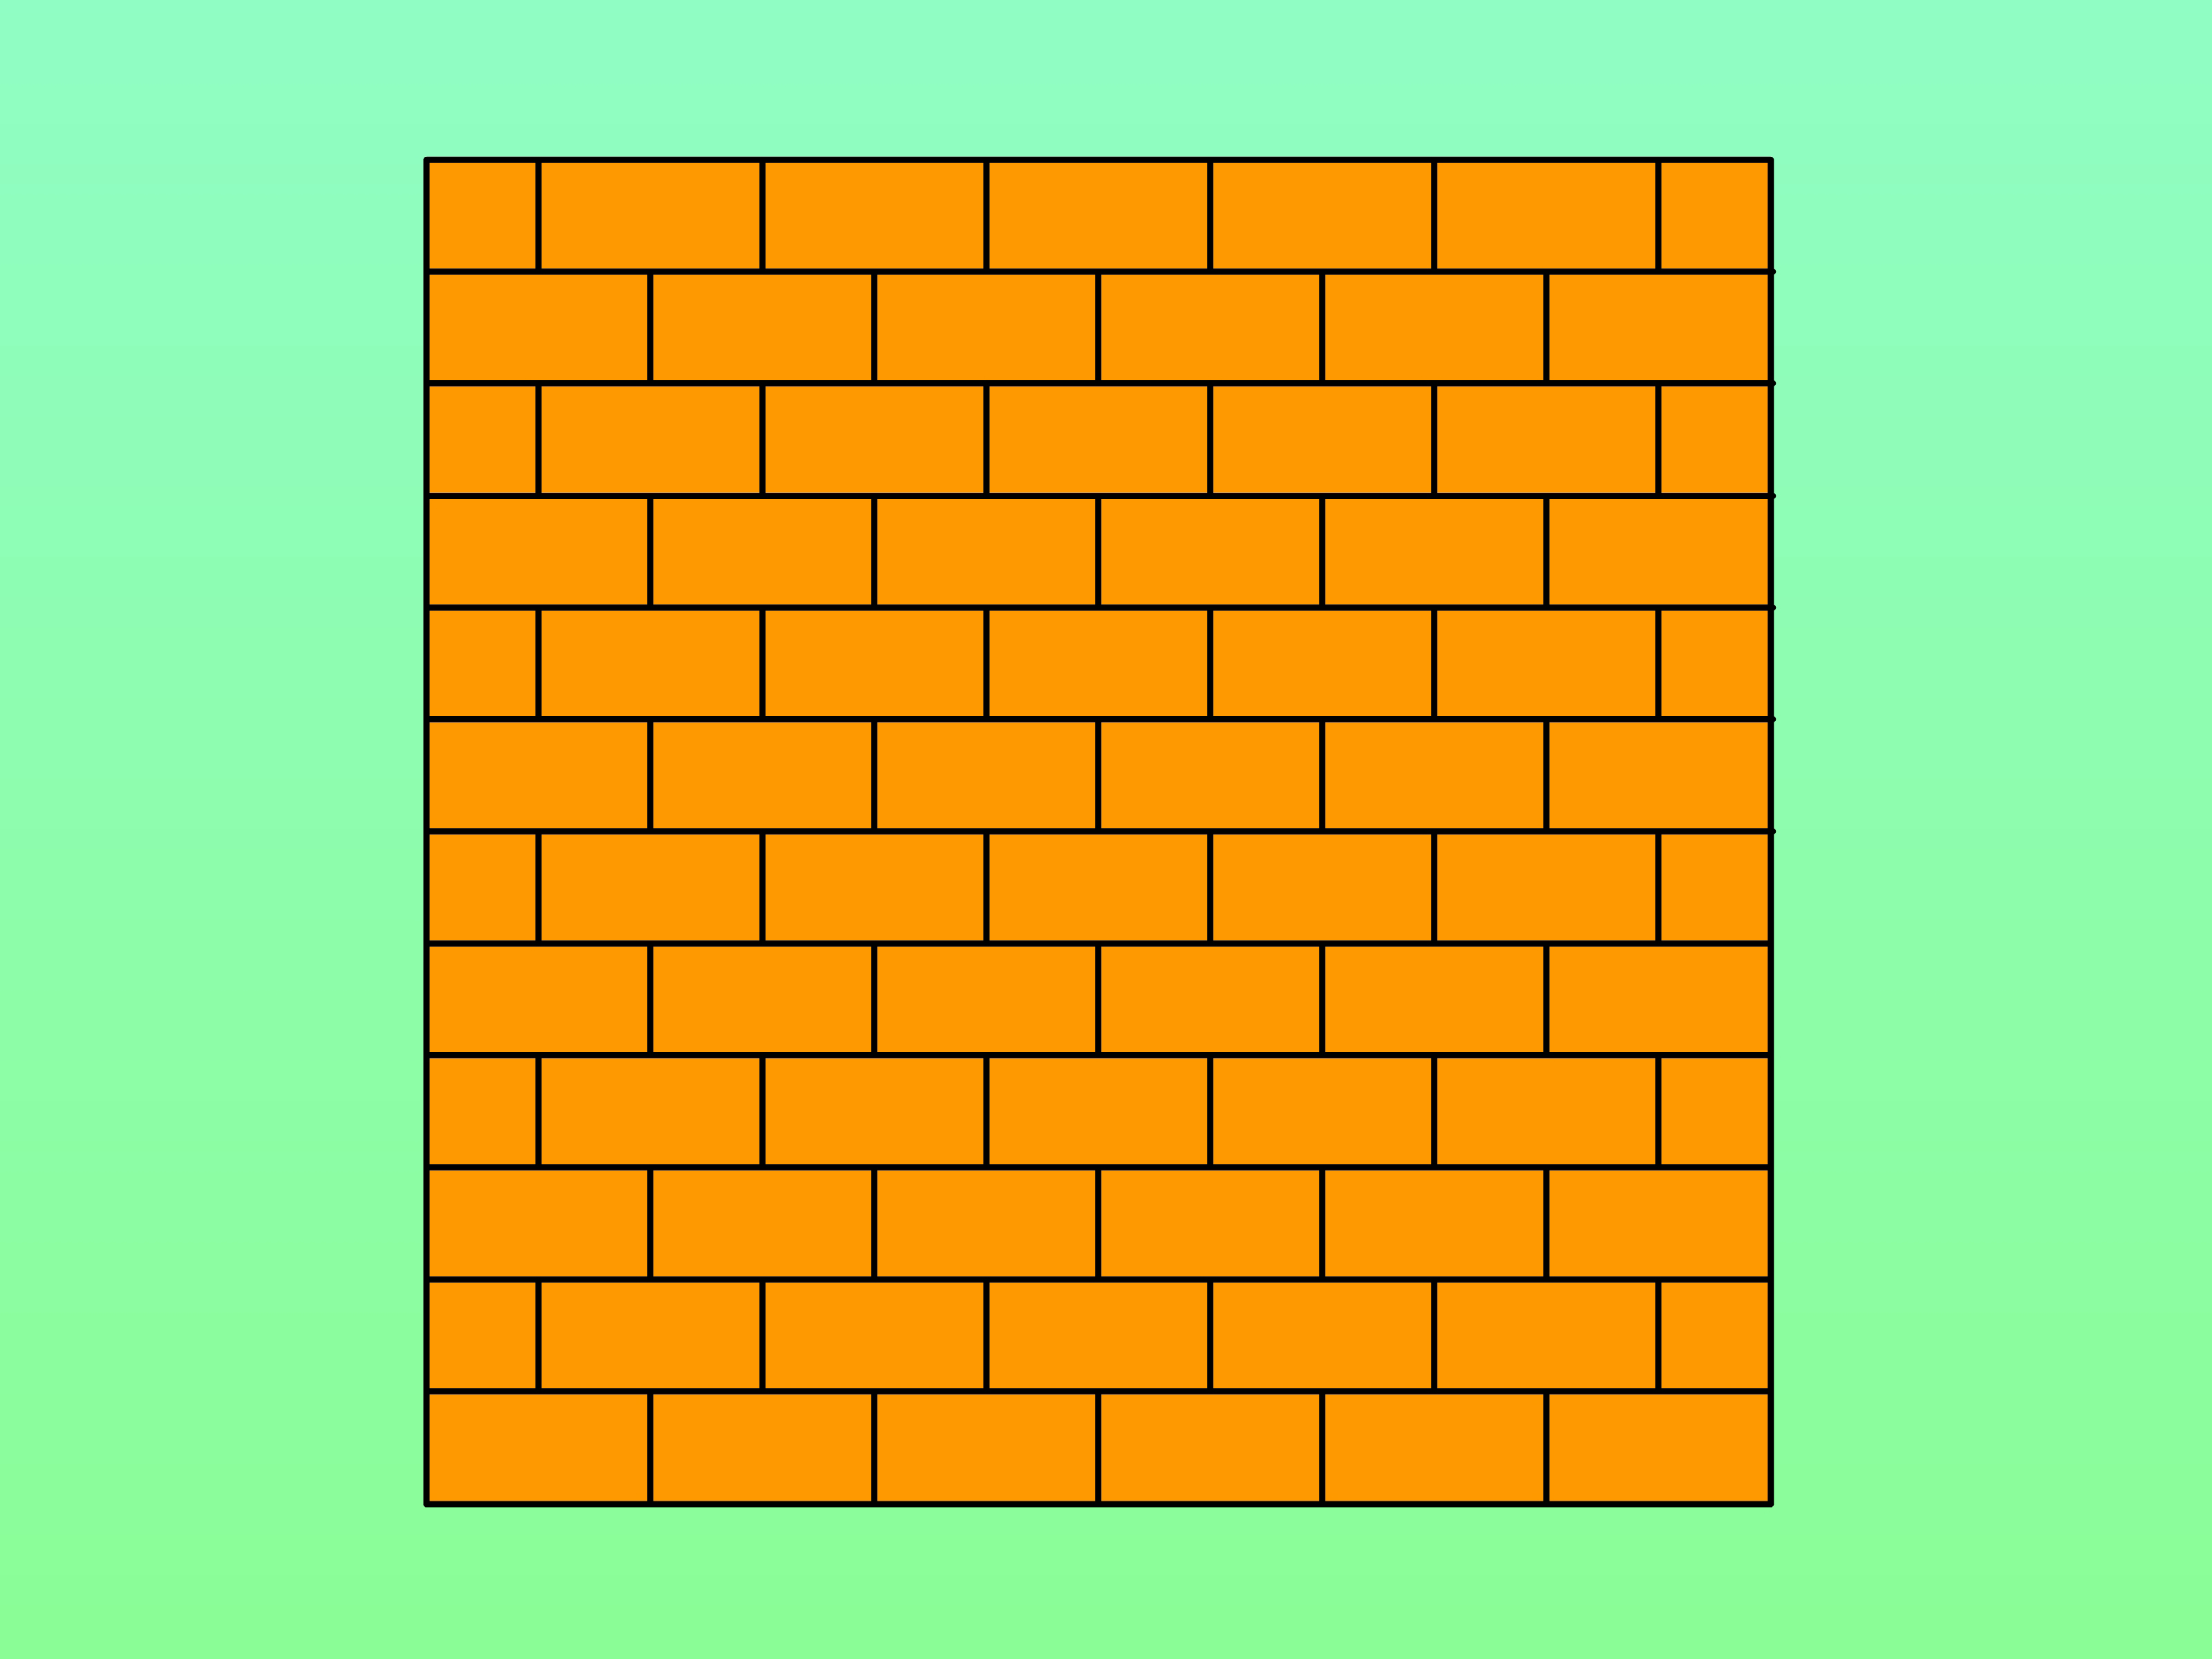 3200x2400 How To Draw A Brick Wall 6 Steps With Pictures